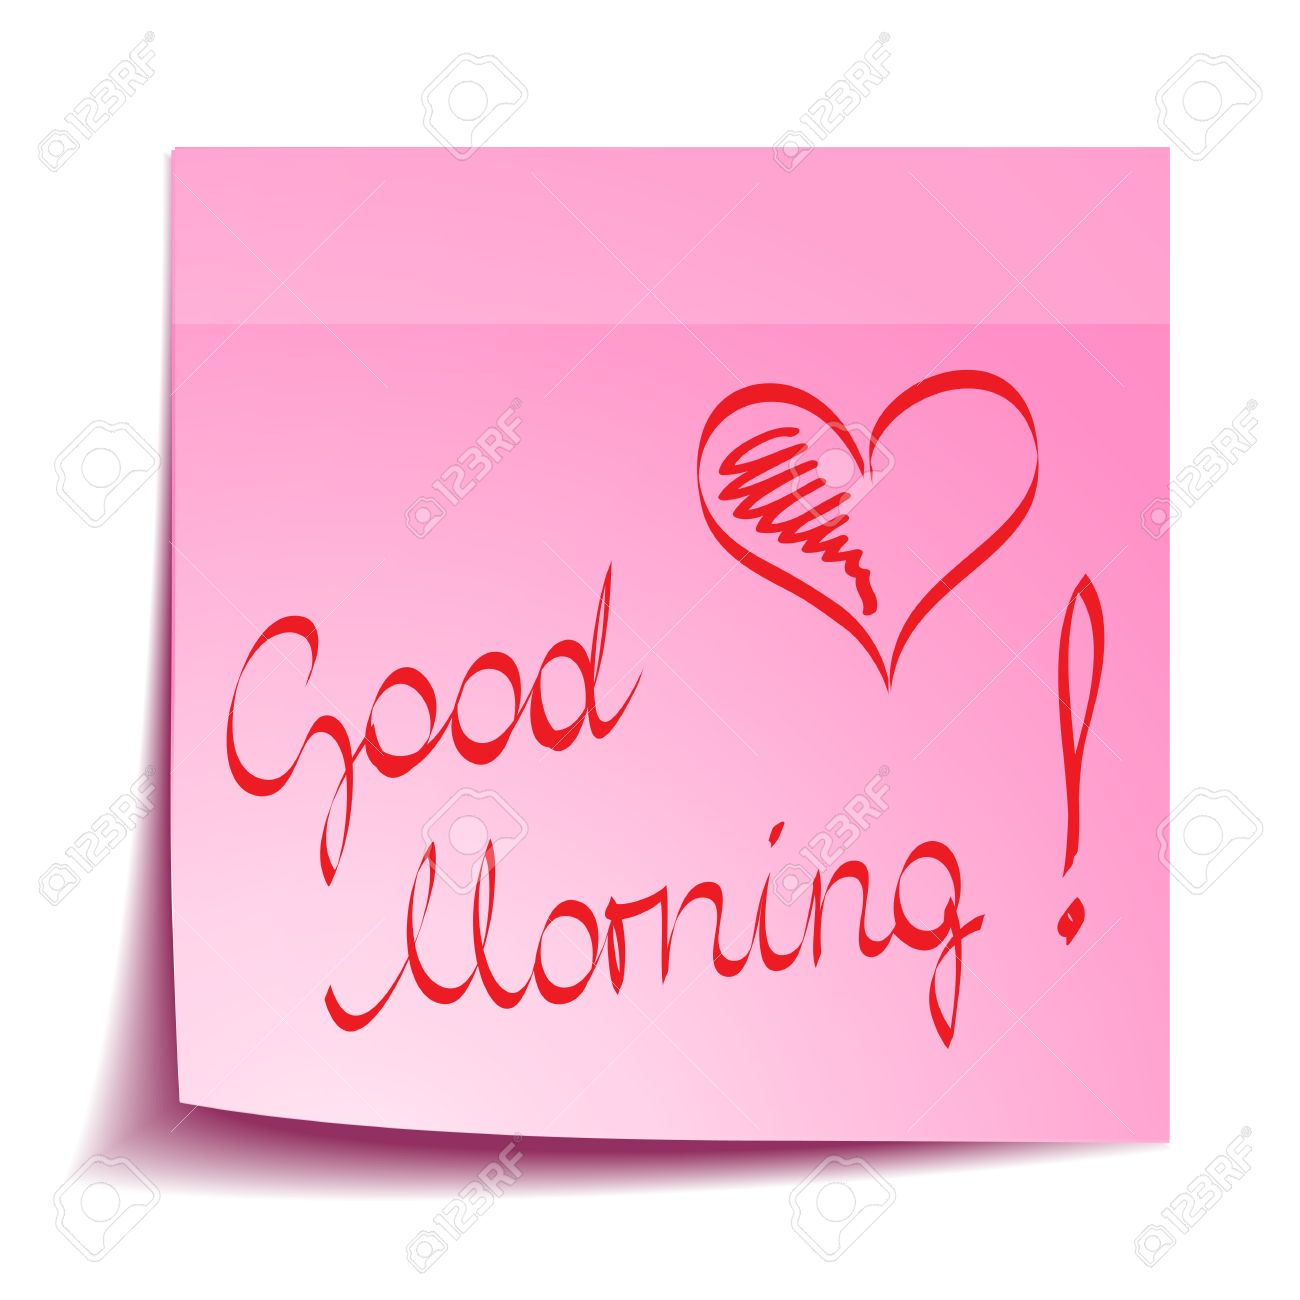 Good Morning Note With Heart Royalty Free Cliparts Vectors And